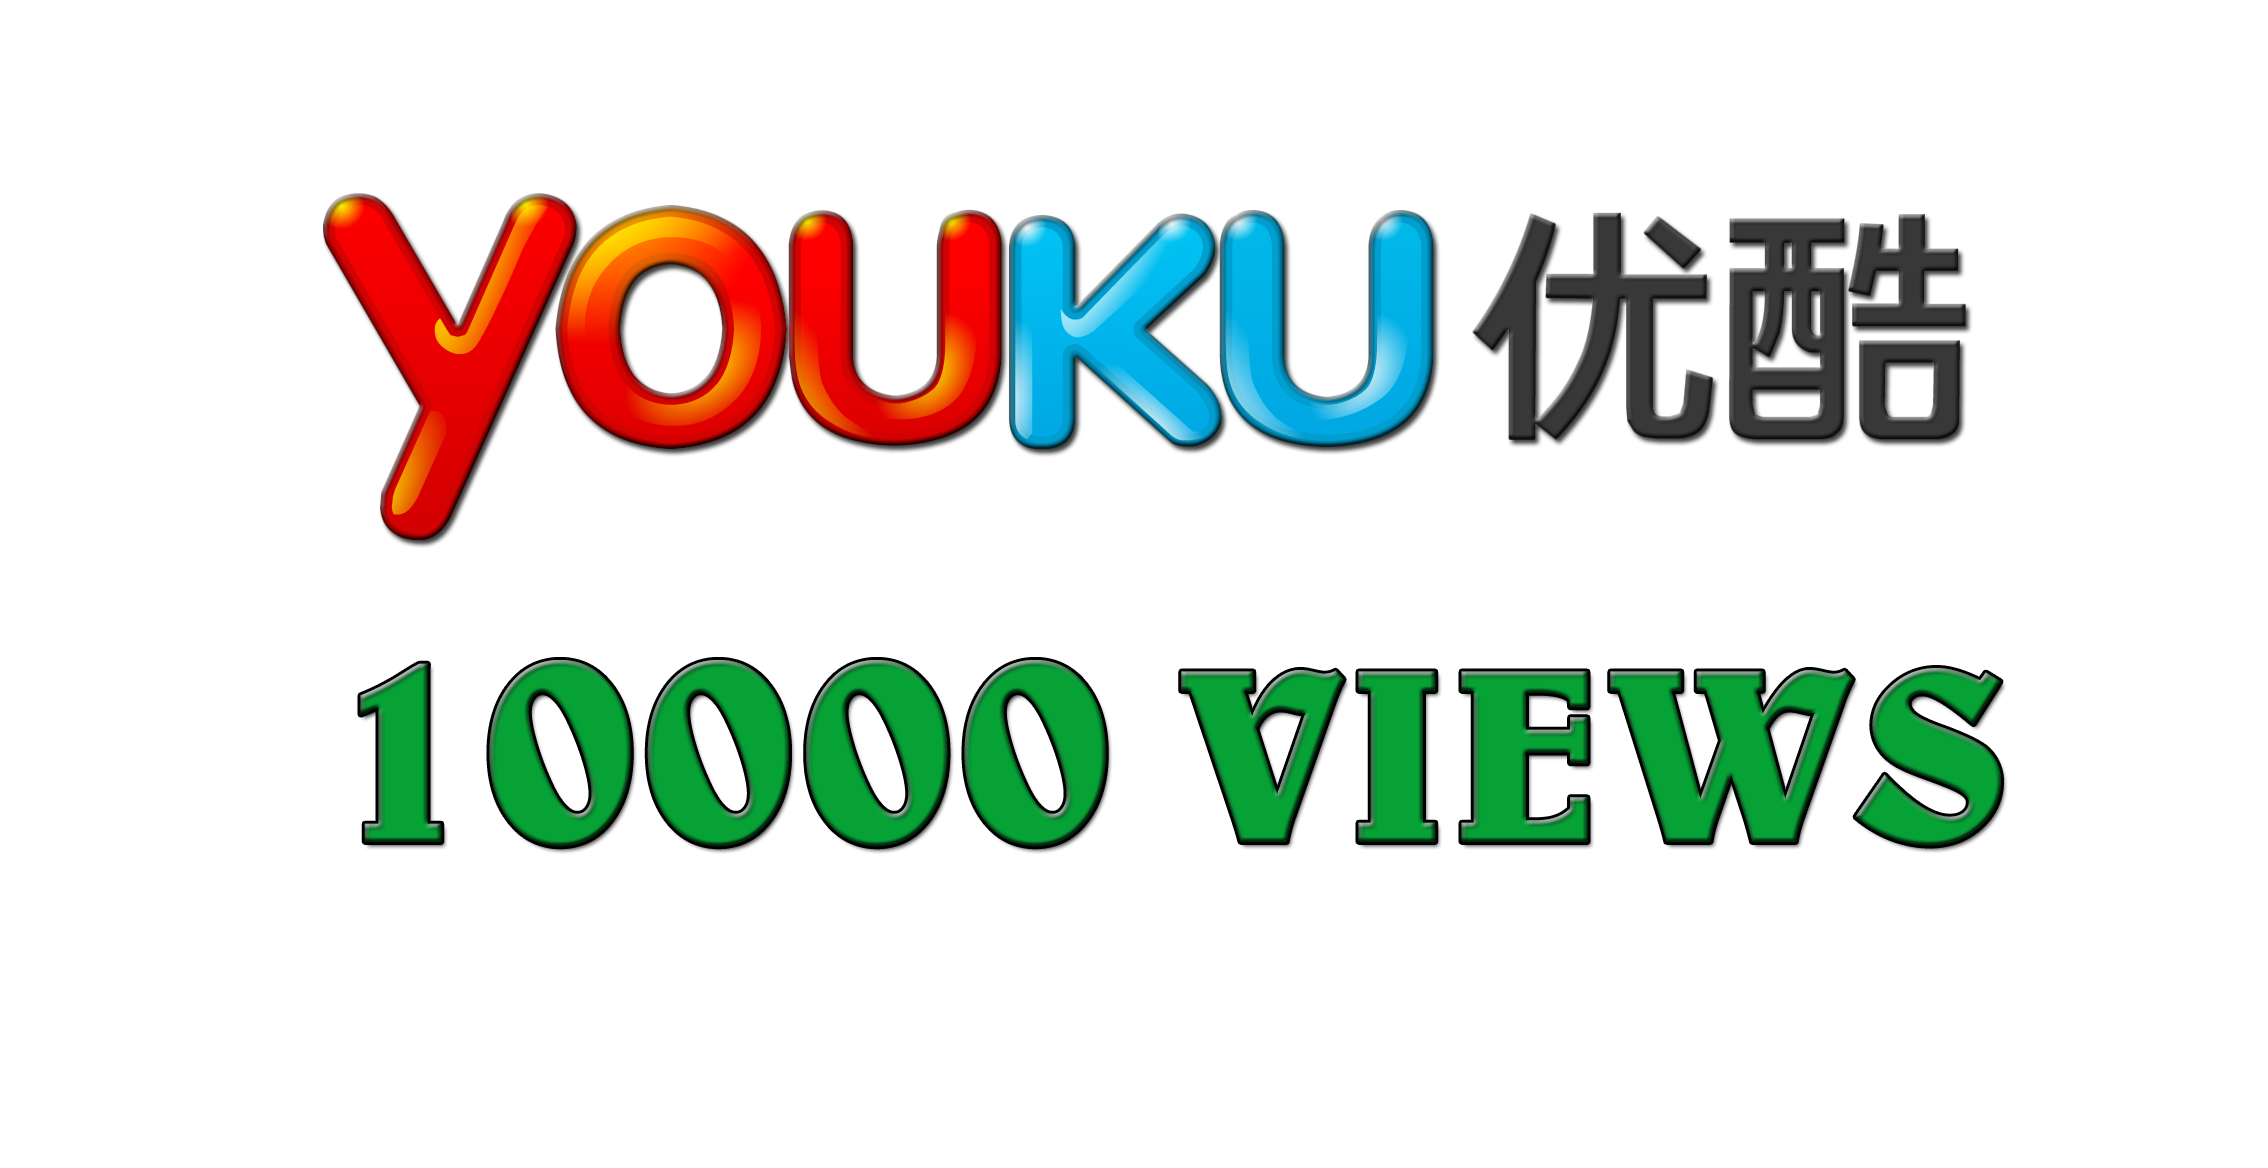 Add 500 Youku views